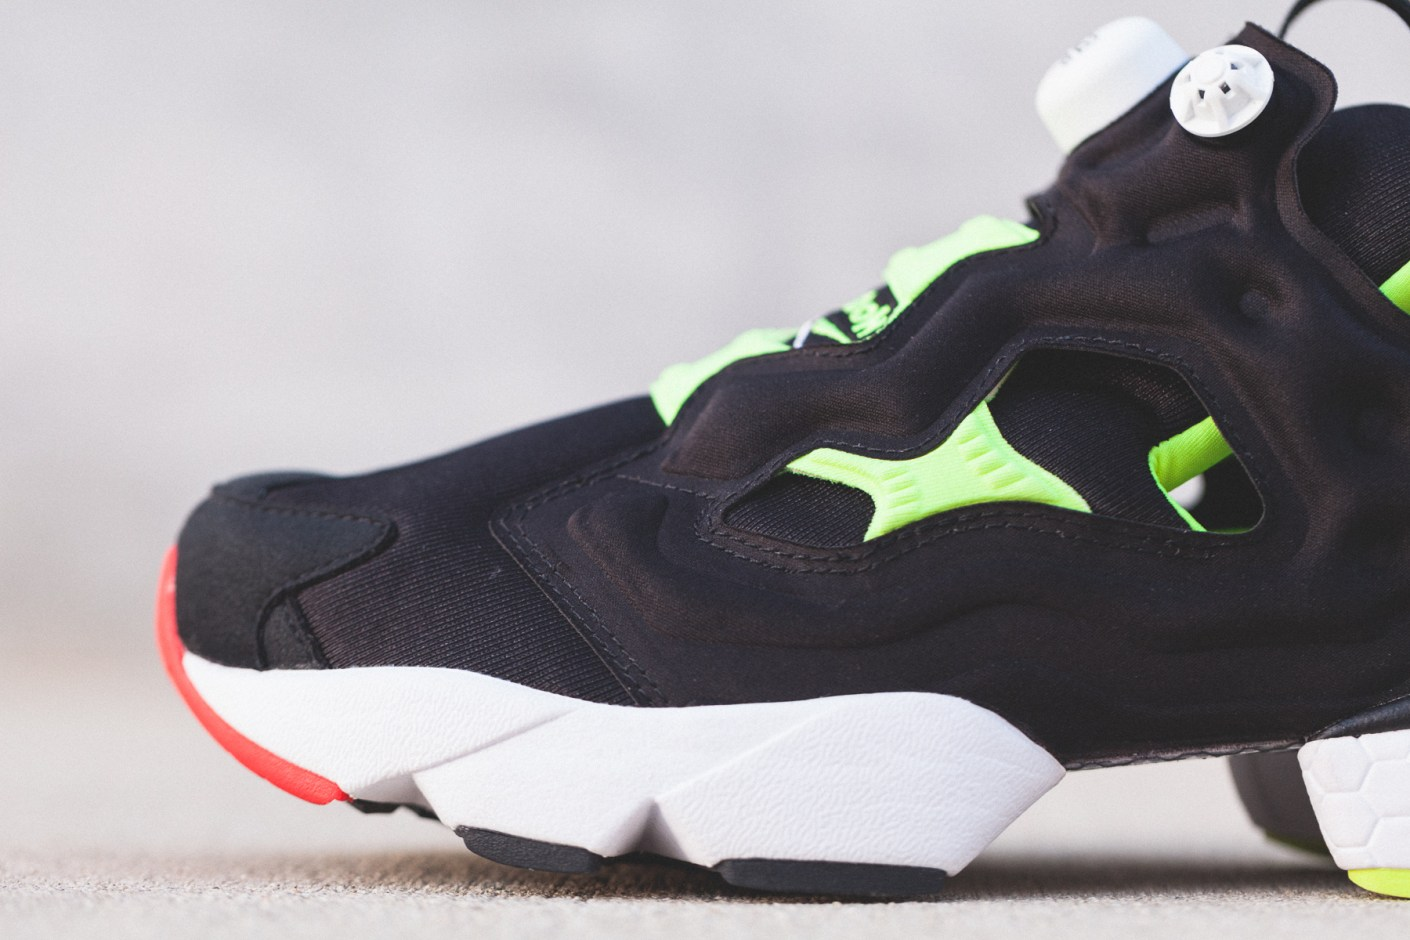 Image of Titolo x Reebok Instapump Fury 20th Anniversary